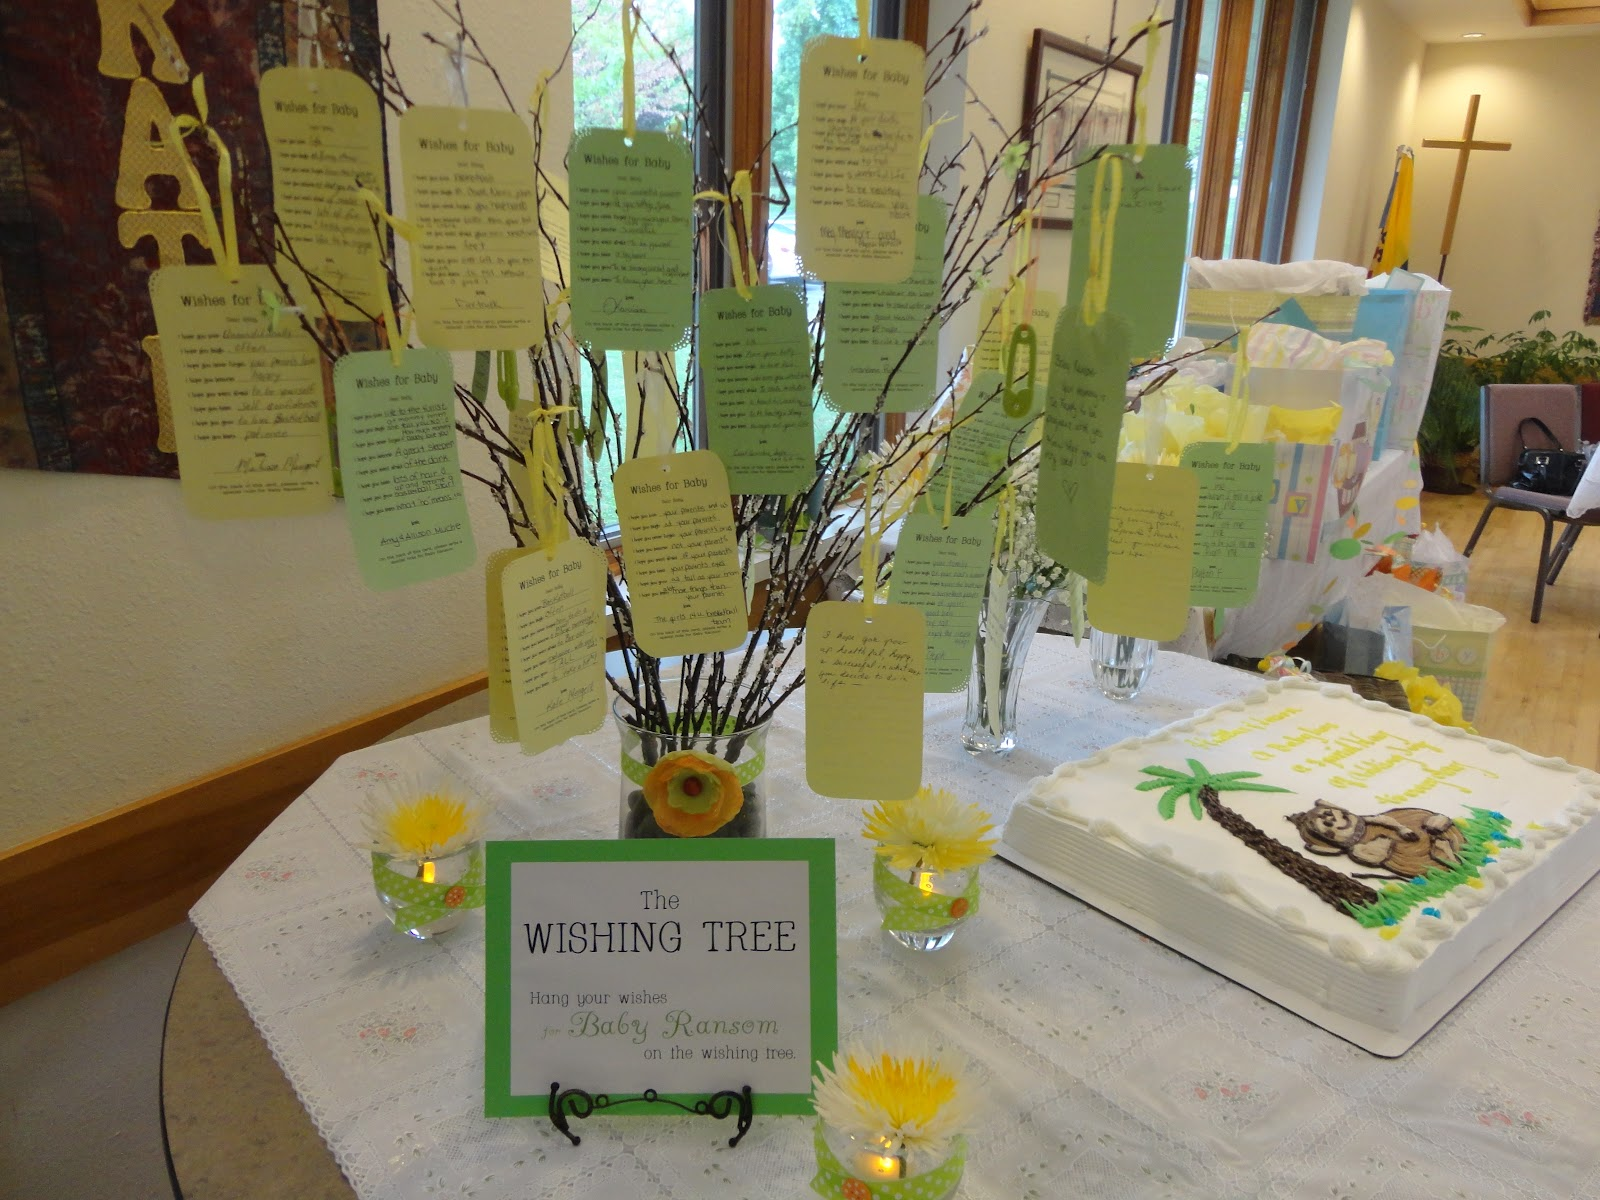 Baby Shower Wish Tree Poem http://freespiritcrafts.blogspot.com/2012/05/how-to-make-your-own-wishing-tree-baby.html